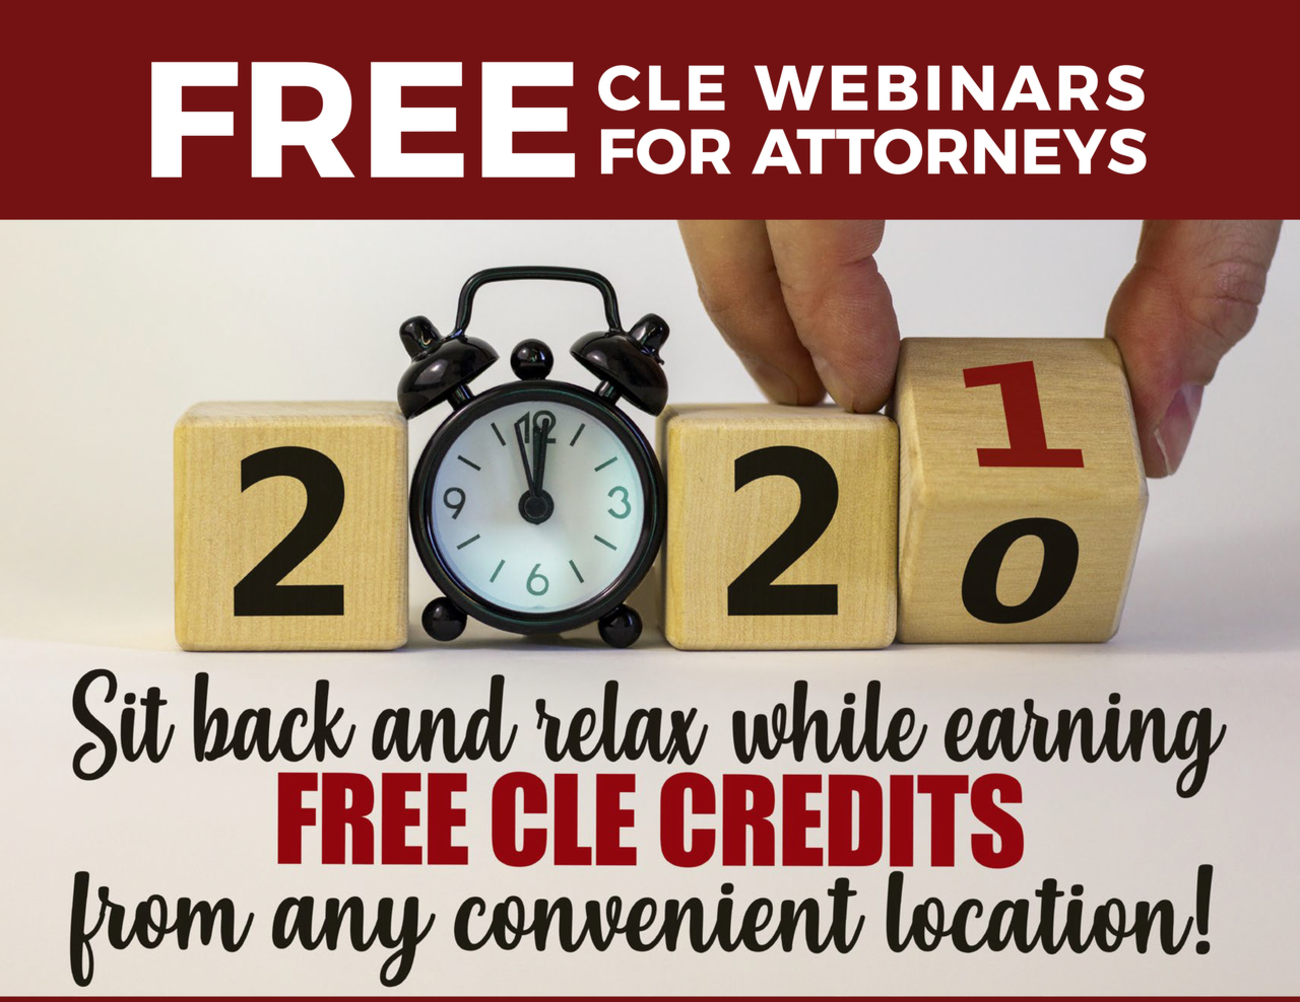 Free CLE Webinar for Attorneys 2021